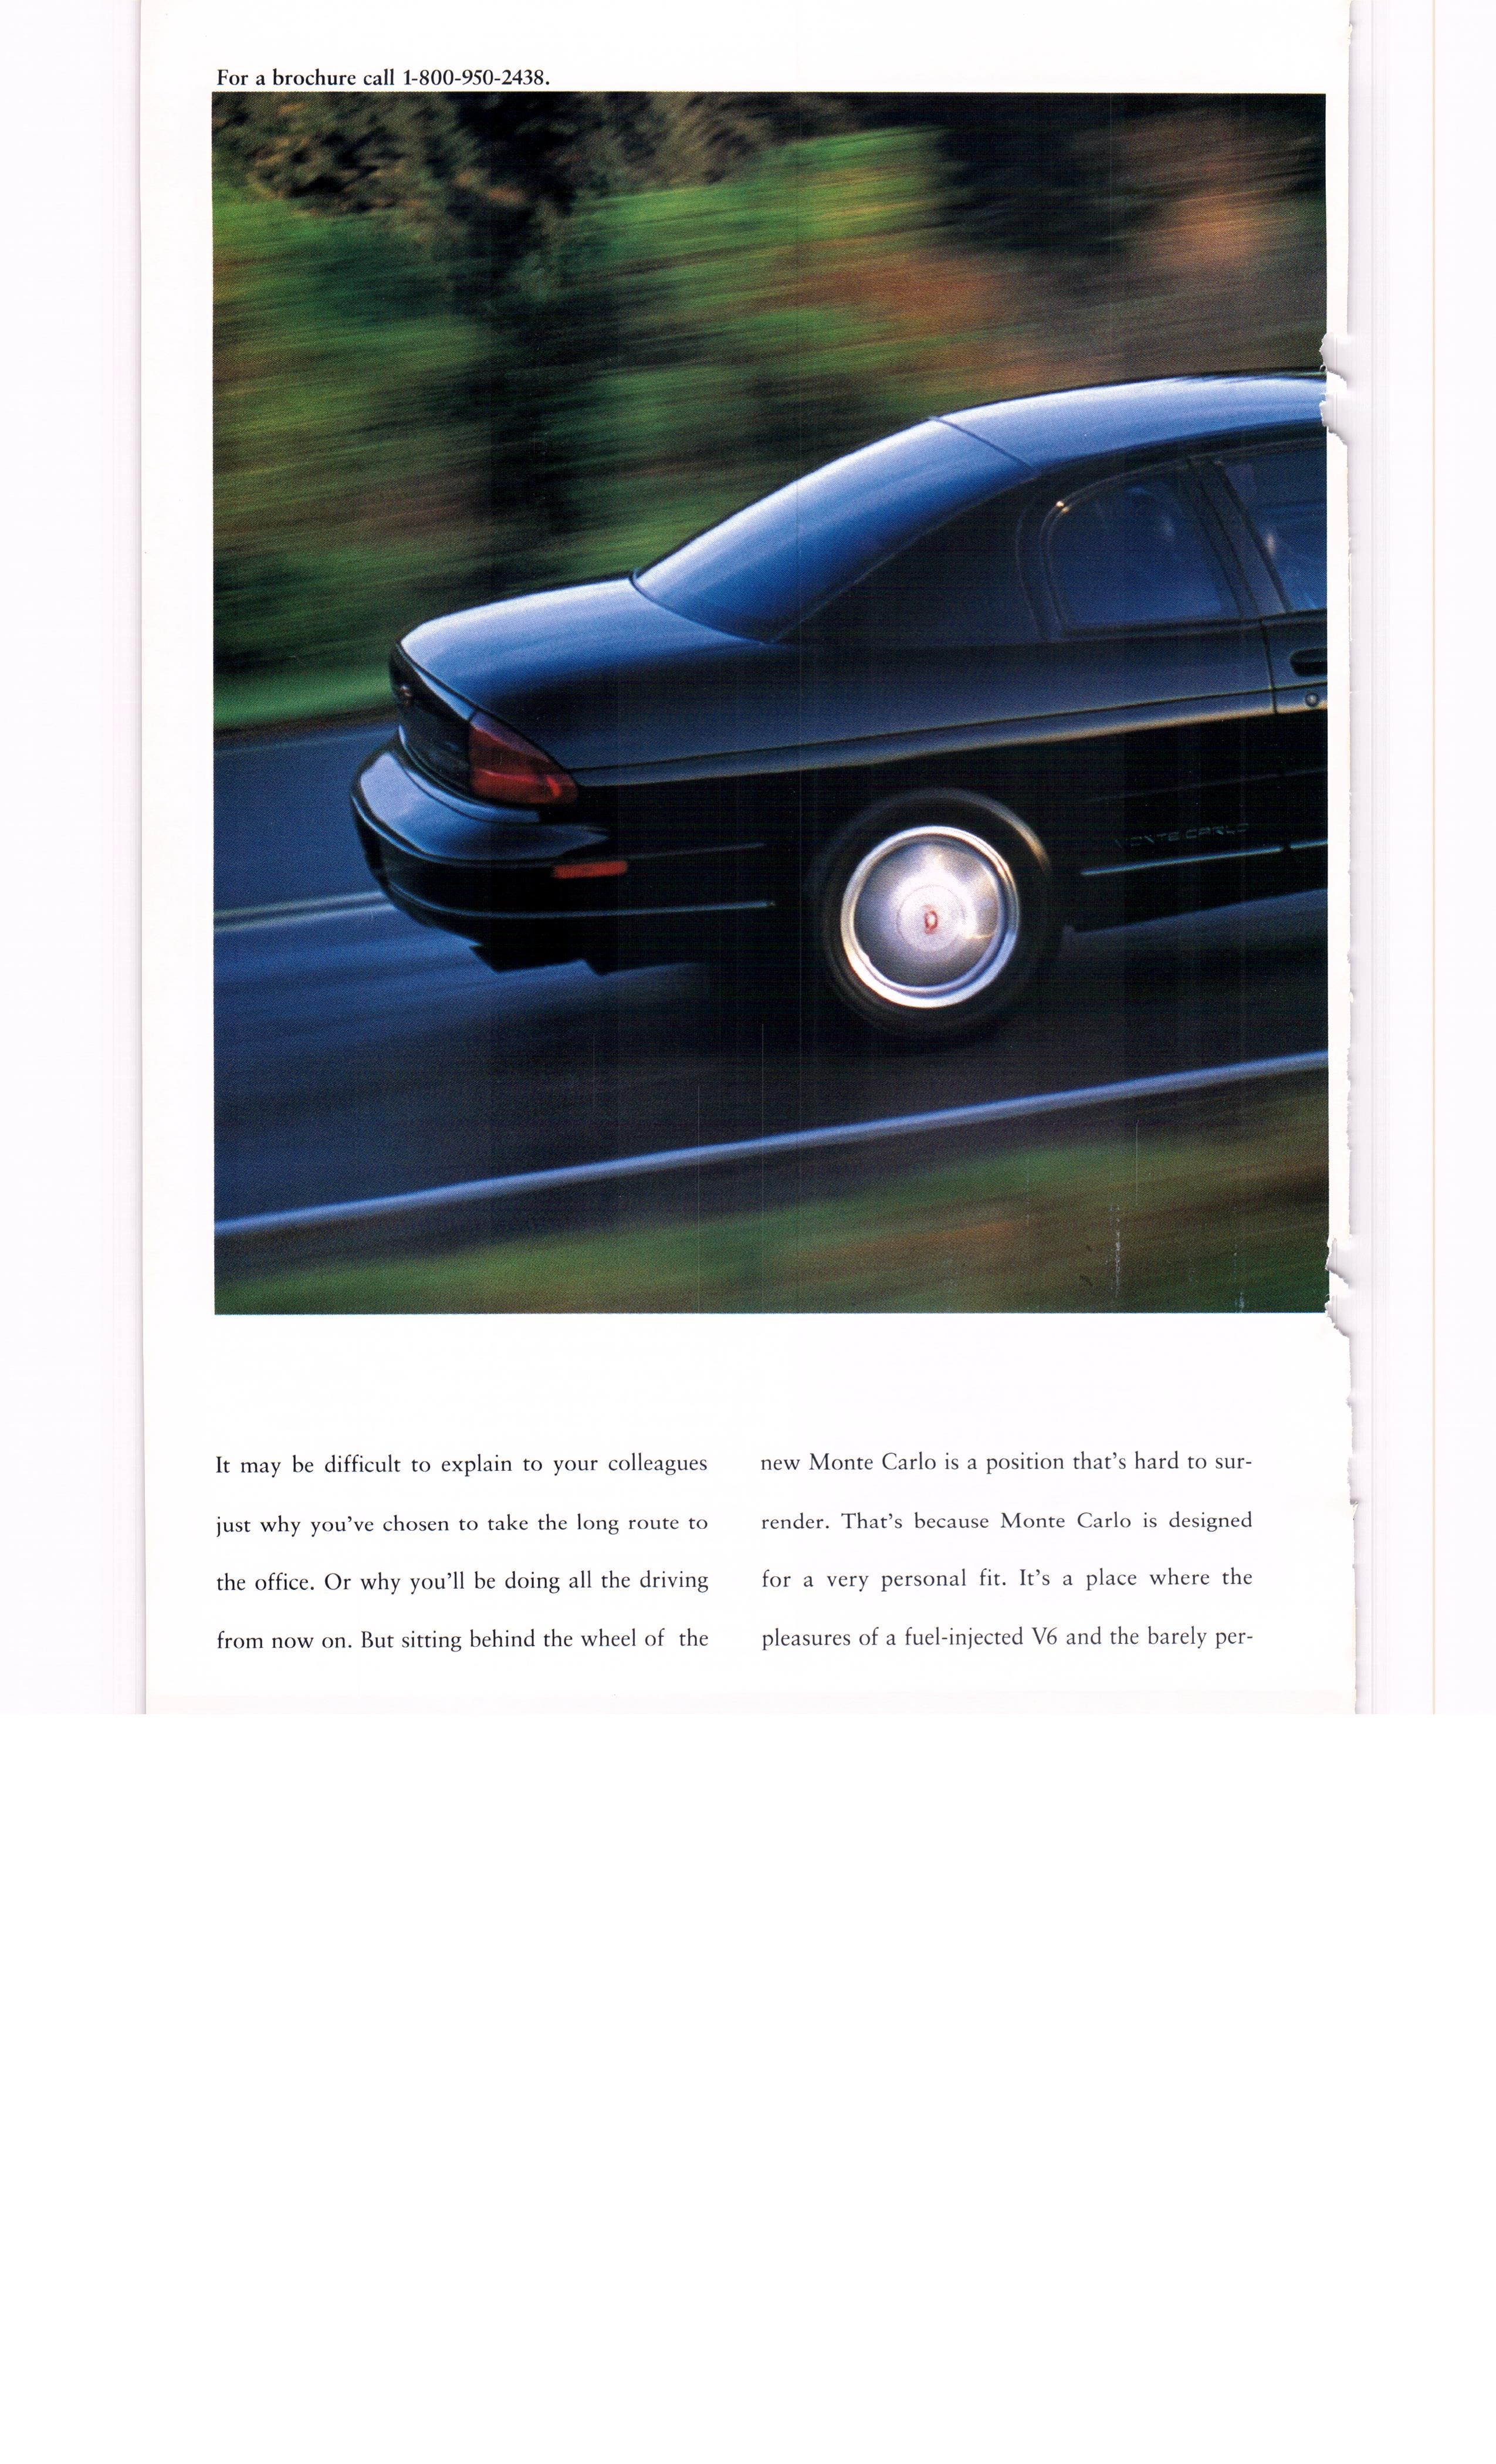 small resolution of 1994 chevy monte carlo ad2 national geographic september 1994